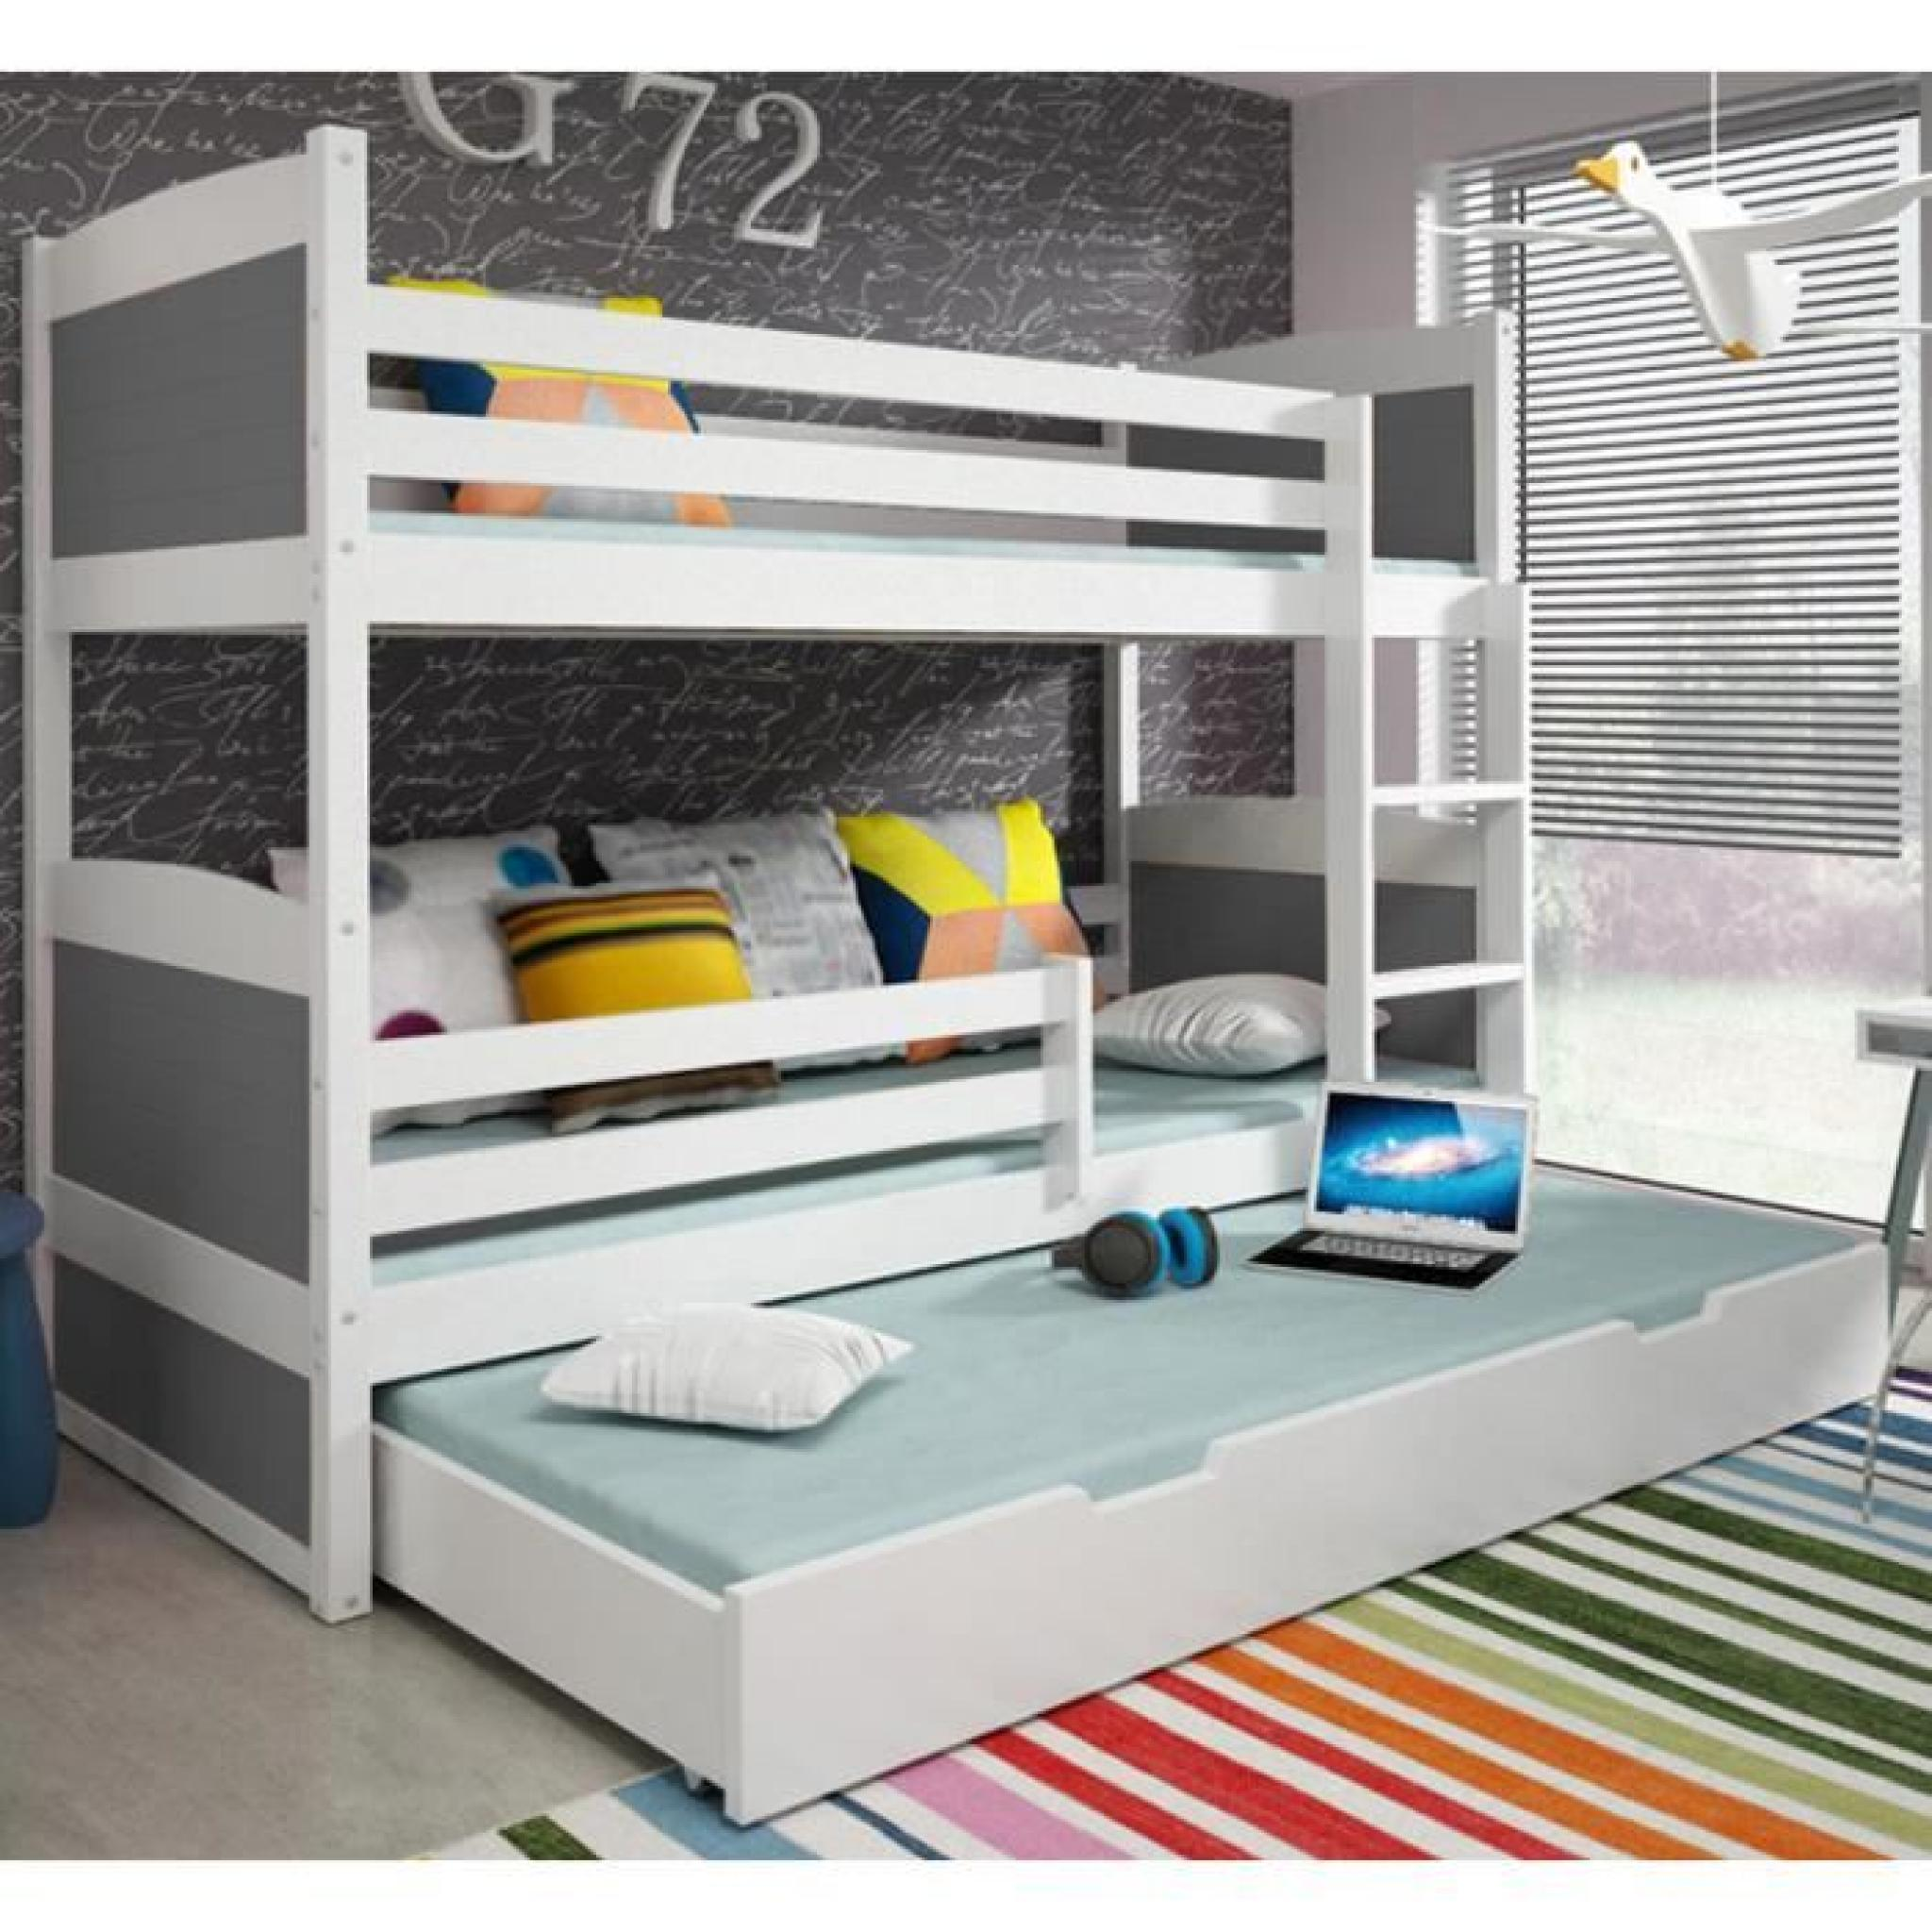 lit superpos rico 3 en pin 185x80 blanc achat vente lit superpose pas cher couleur et. Black Bedroom Furniture Sets. Home Design Ideas